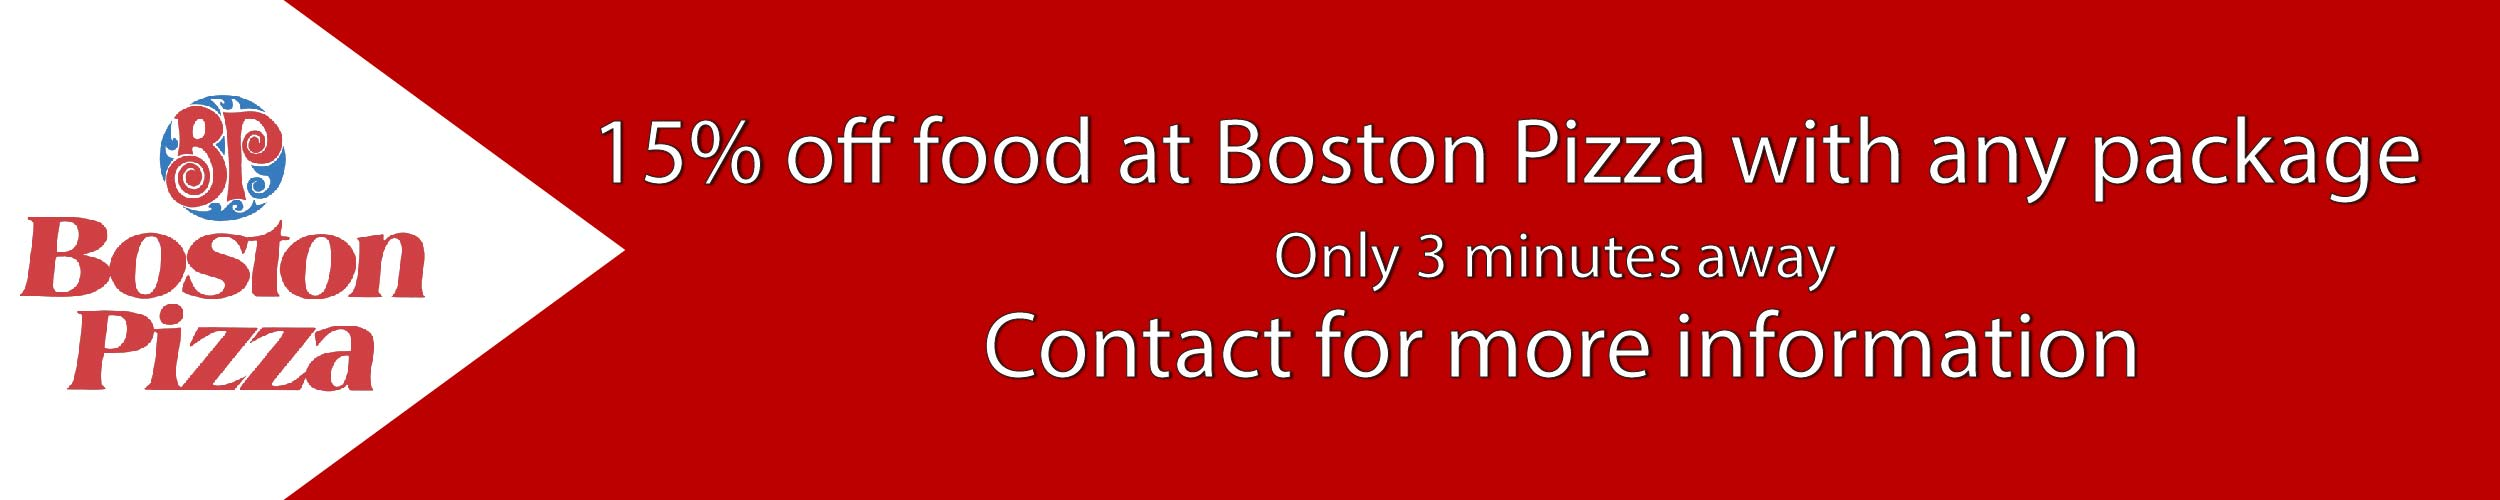 Boston Pizza Website Banner Style 2-01.jpg